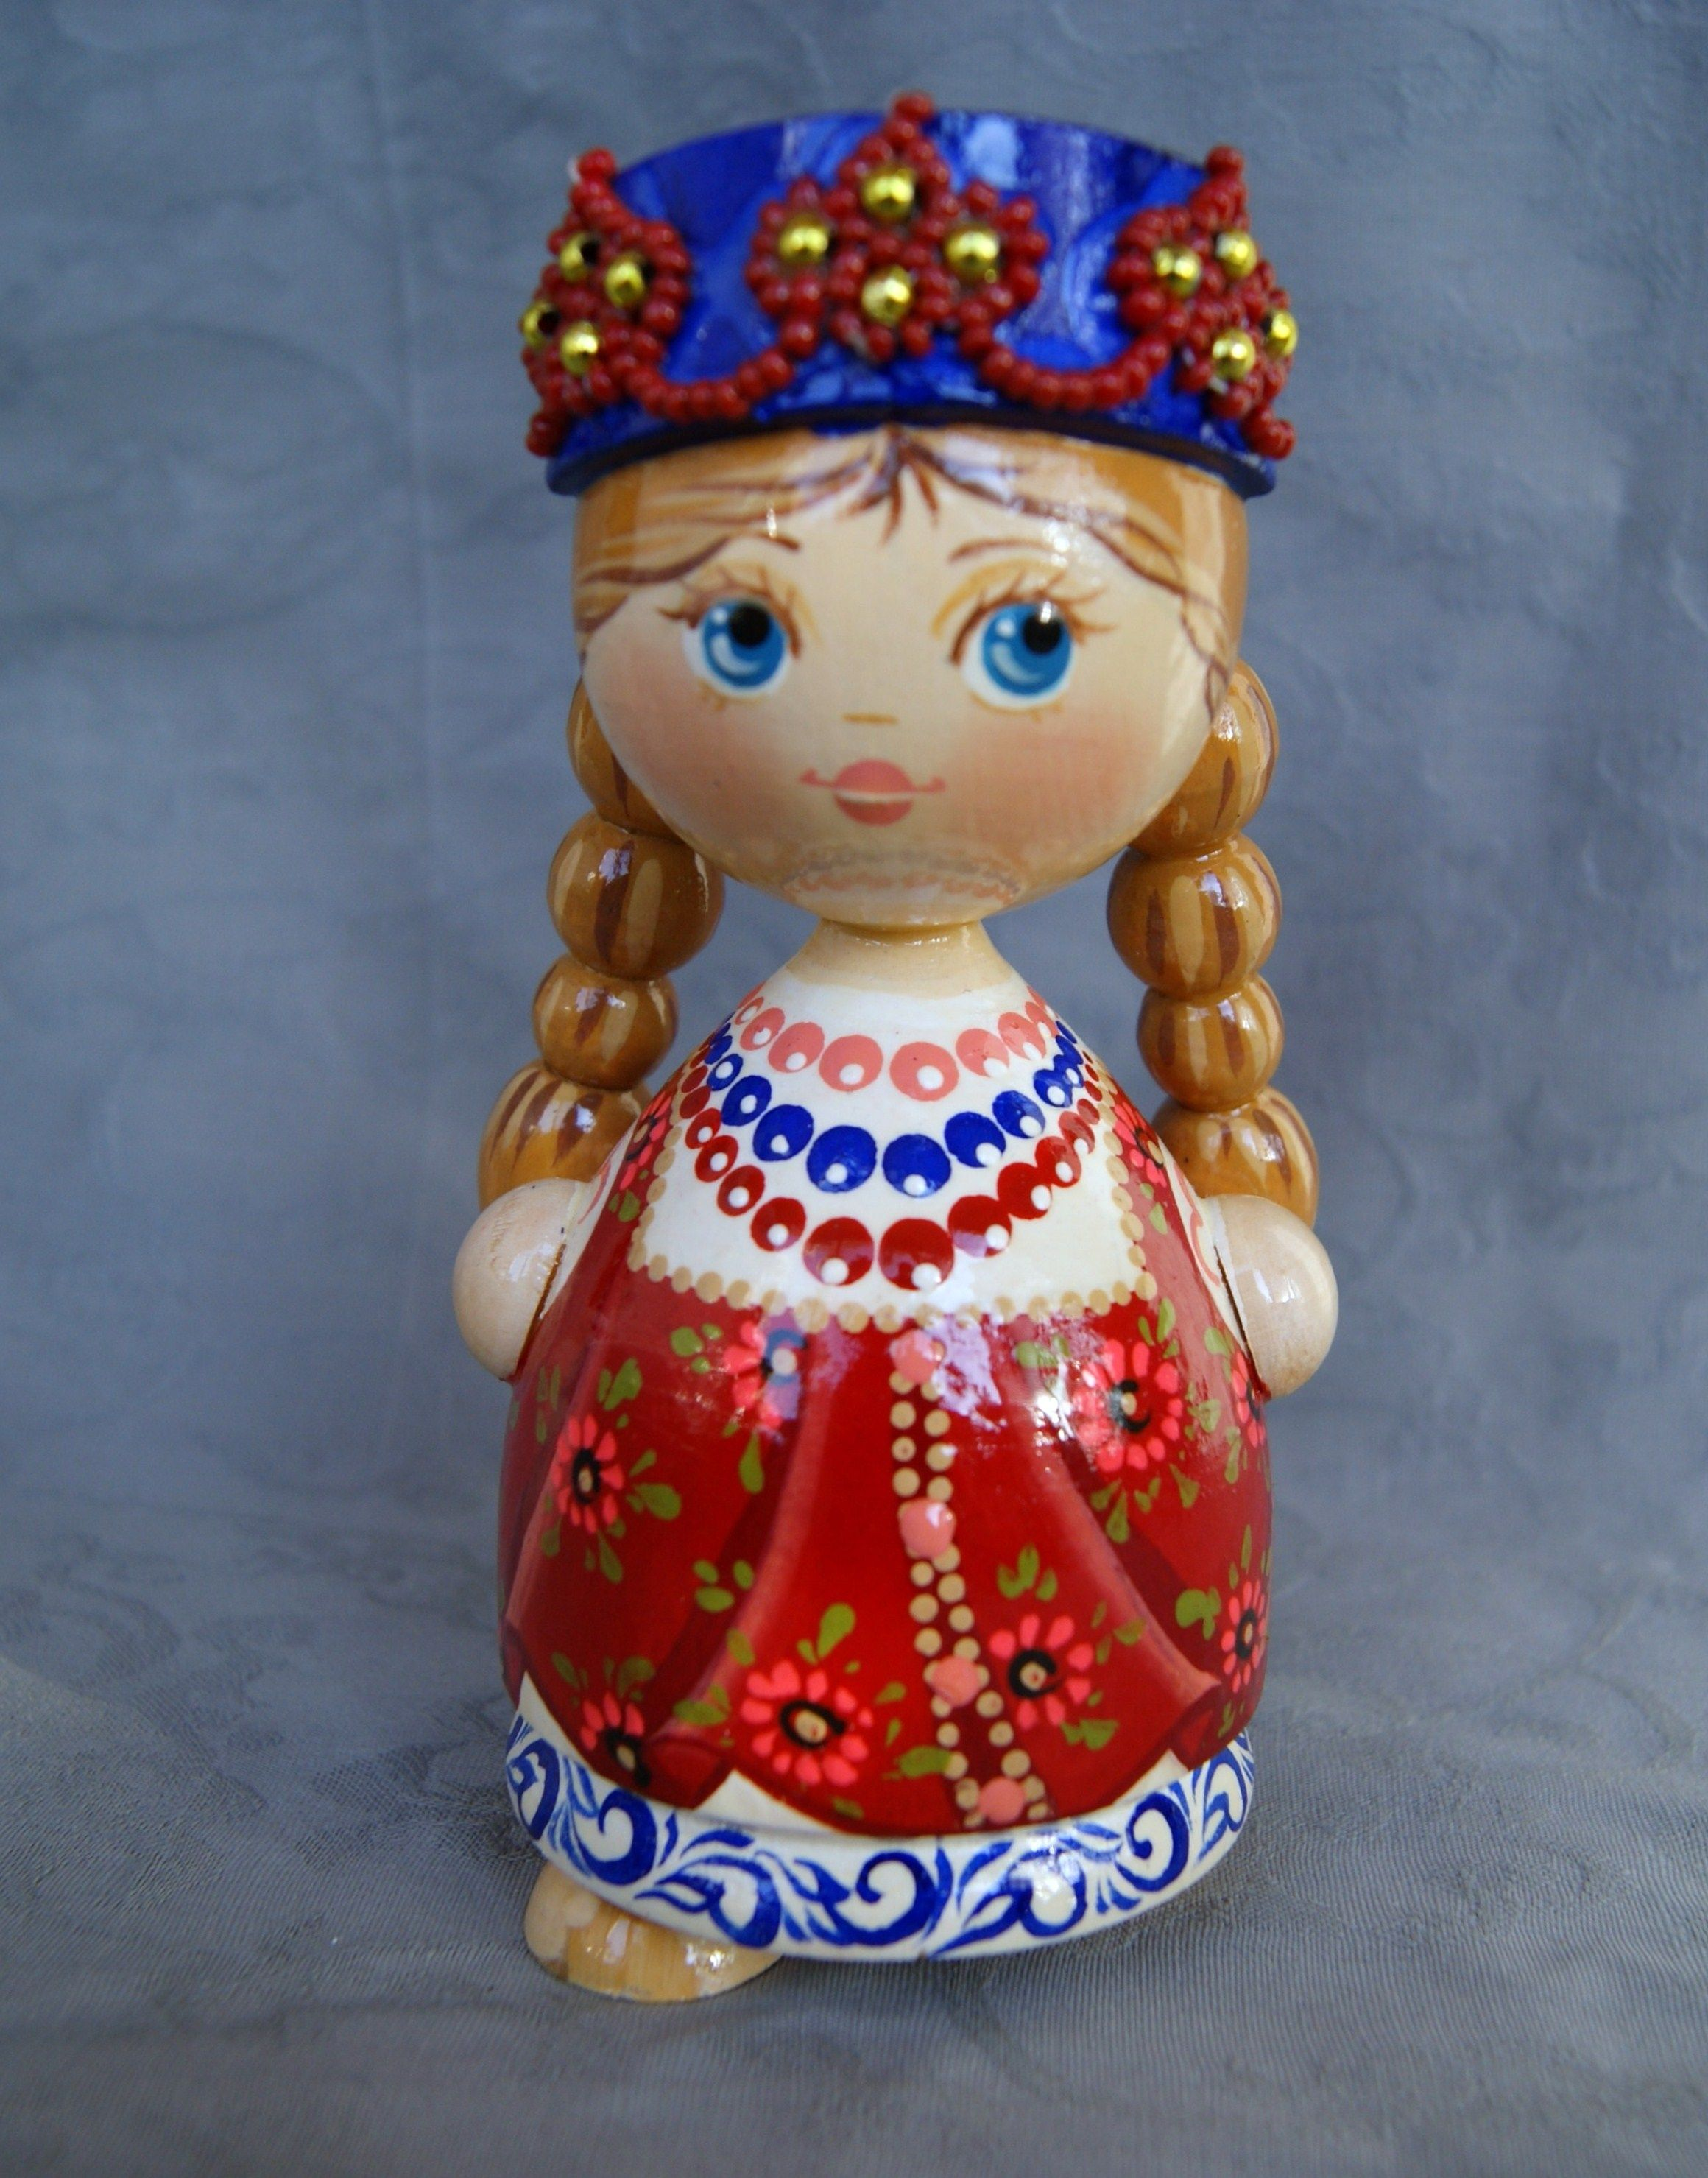 A Wooden Painted Doll Is One Of The Traditional Russian